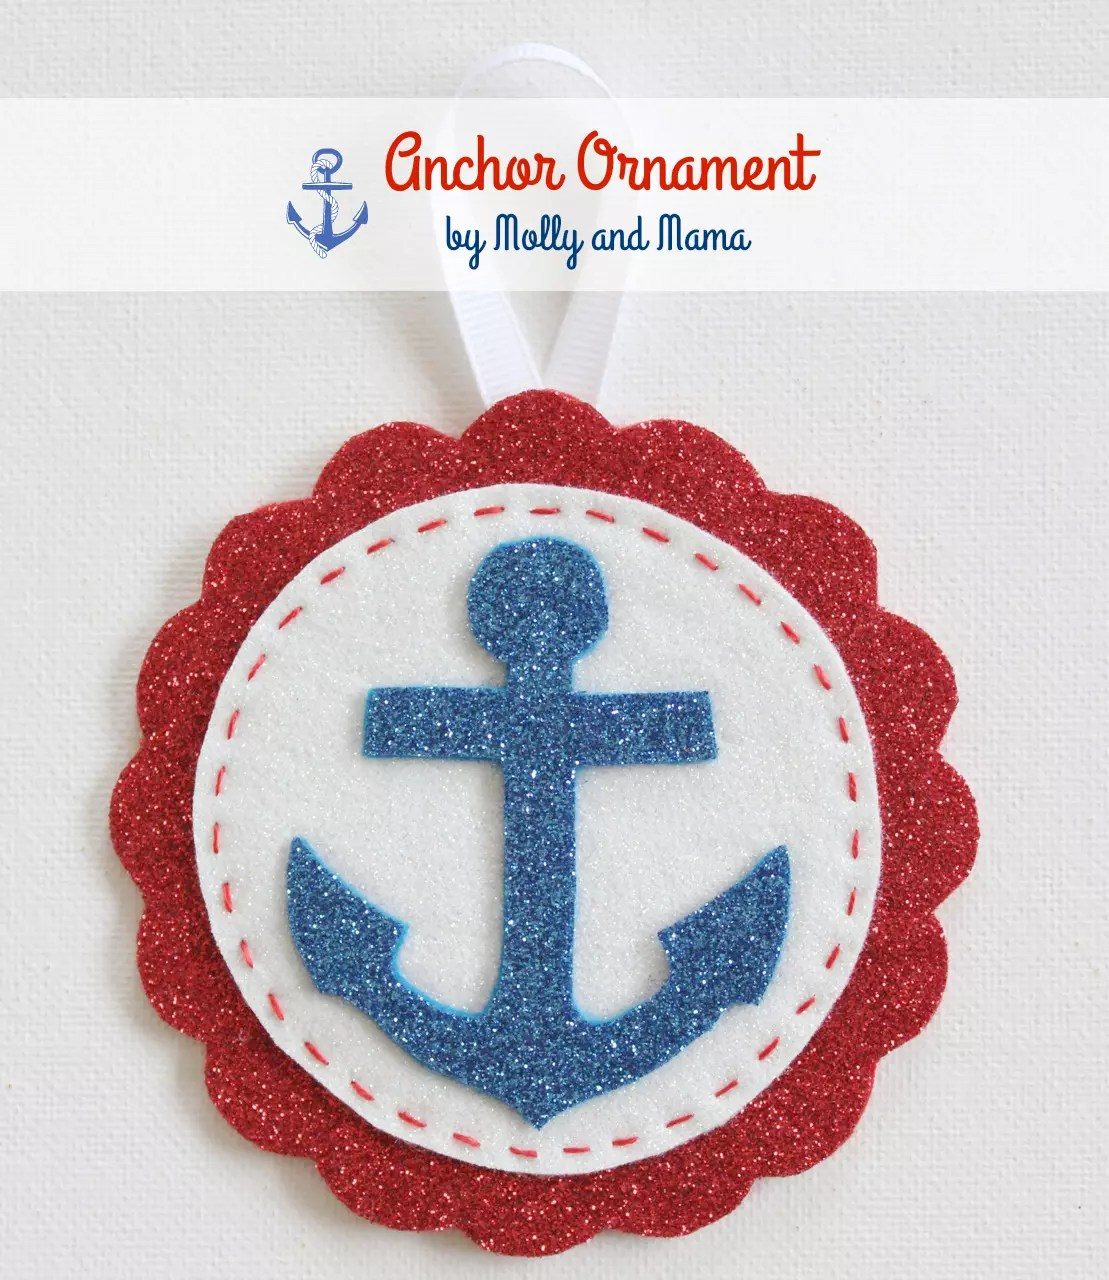 Anchor ornaments - Anchor Ornament Tutorial By Molly And Mama